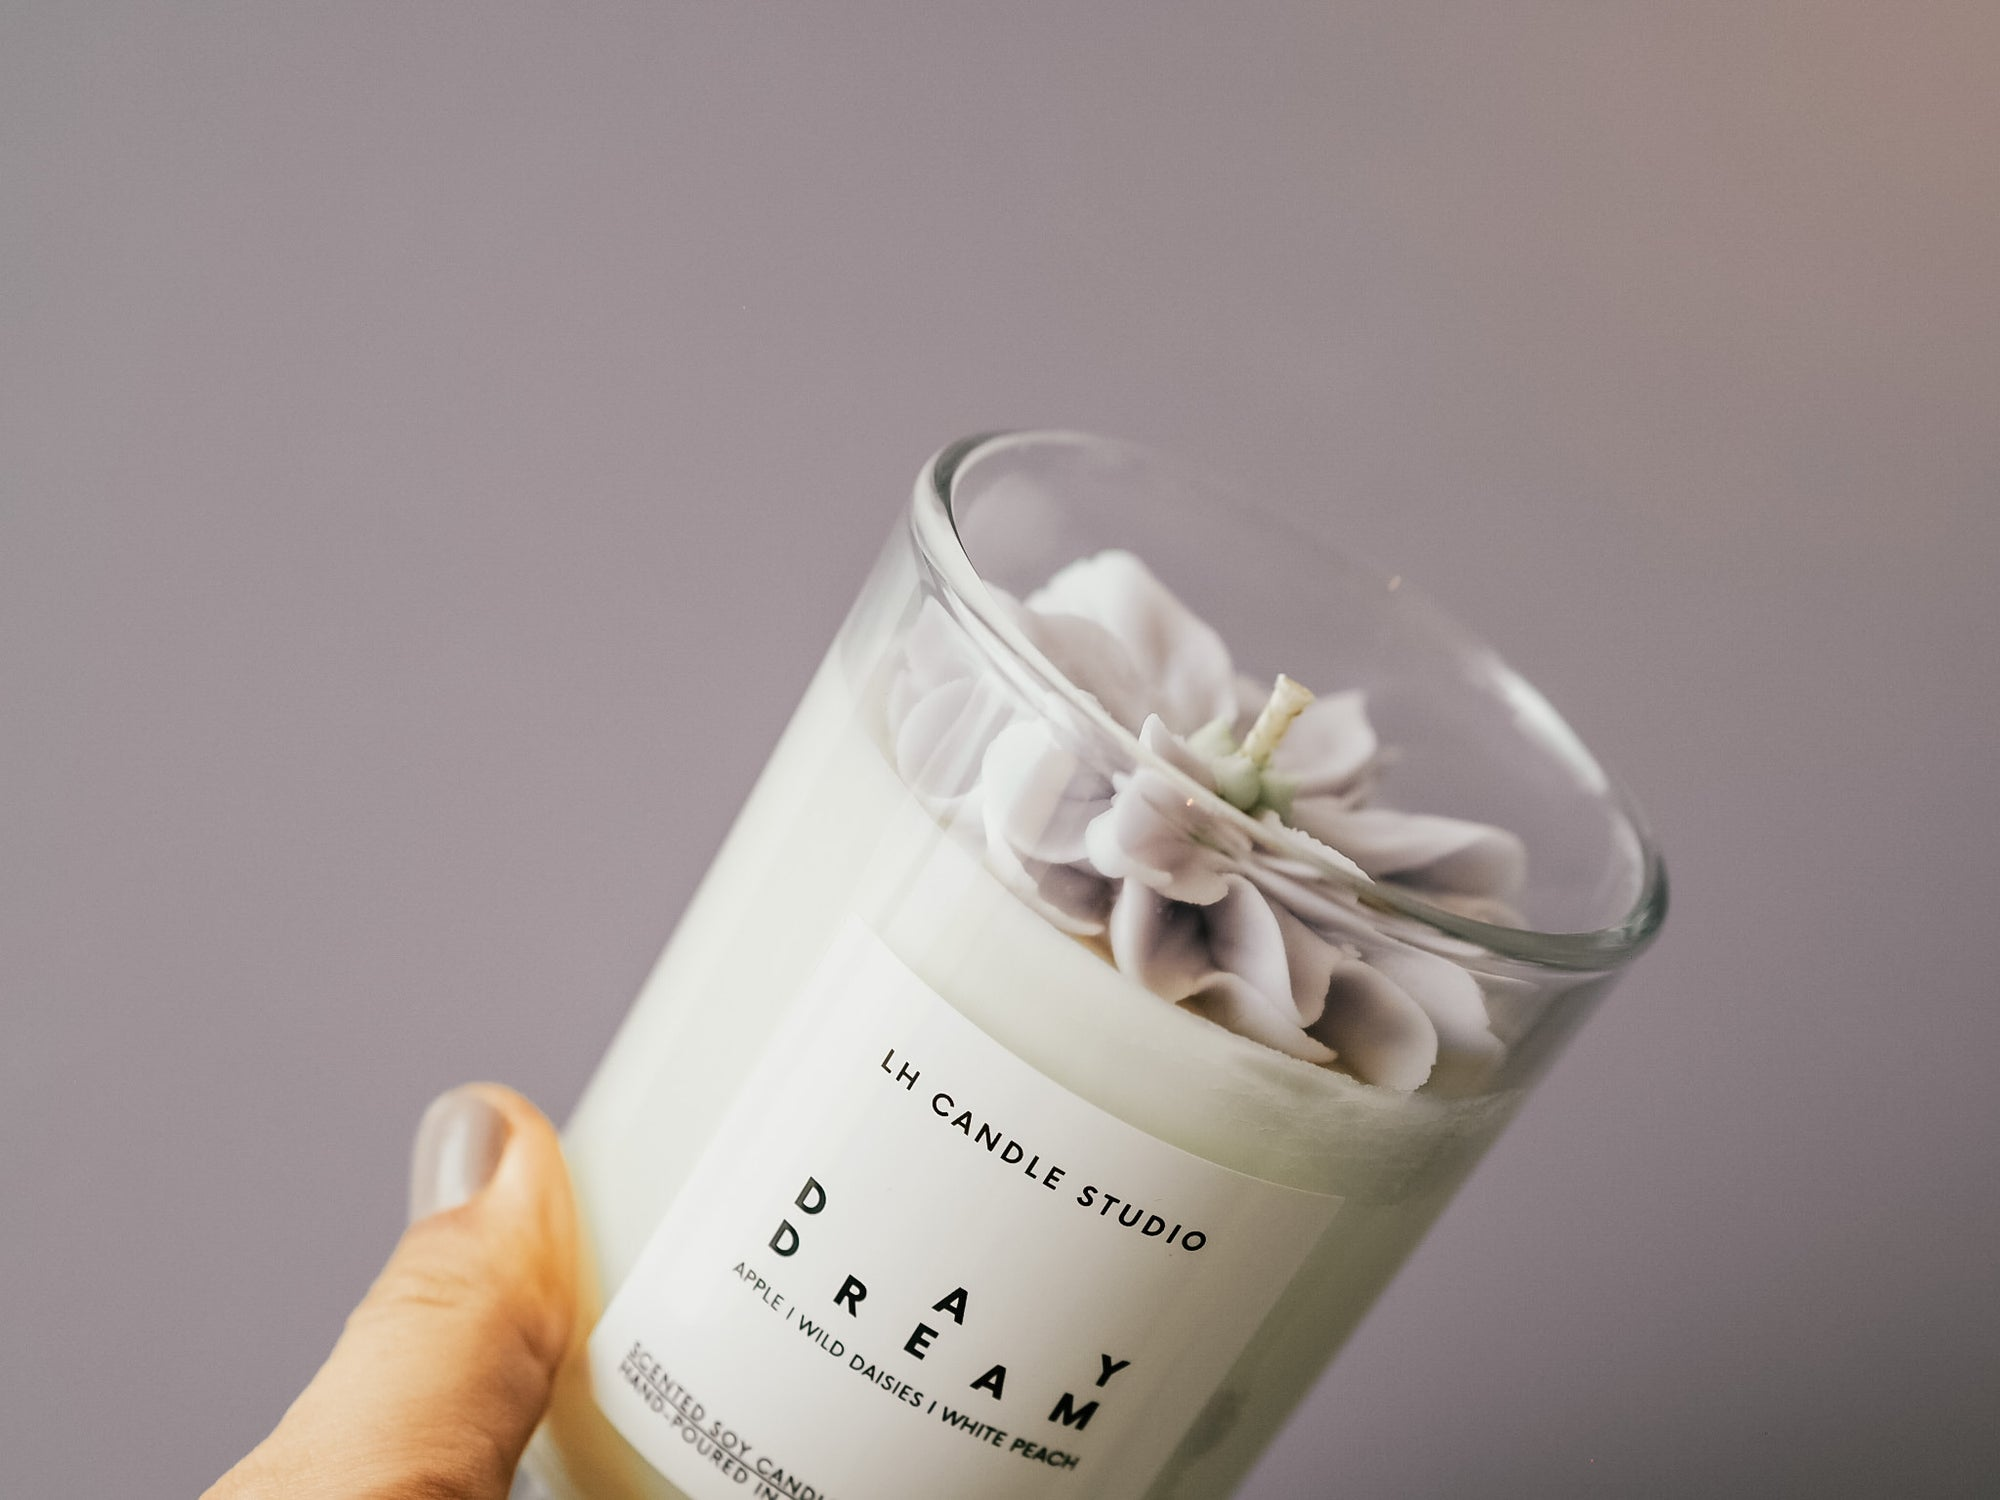 Day Dream Candle - LH CANDLE STUDIO